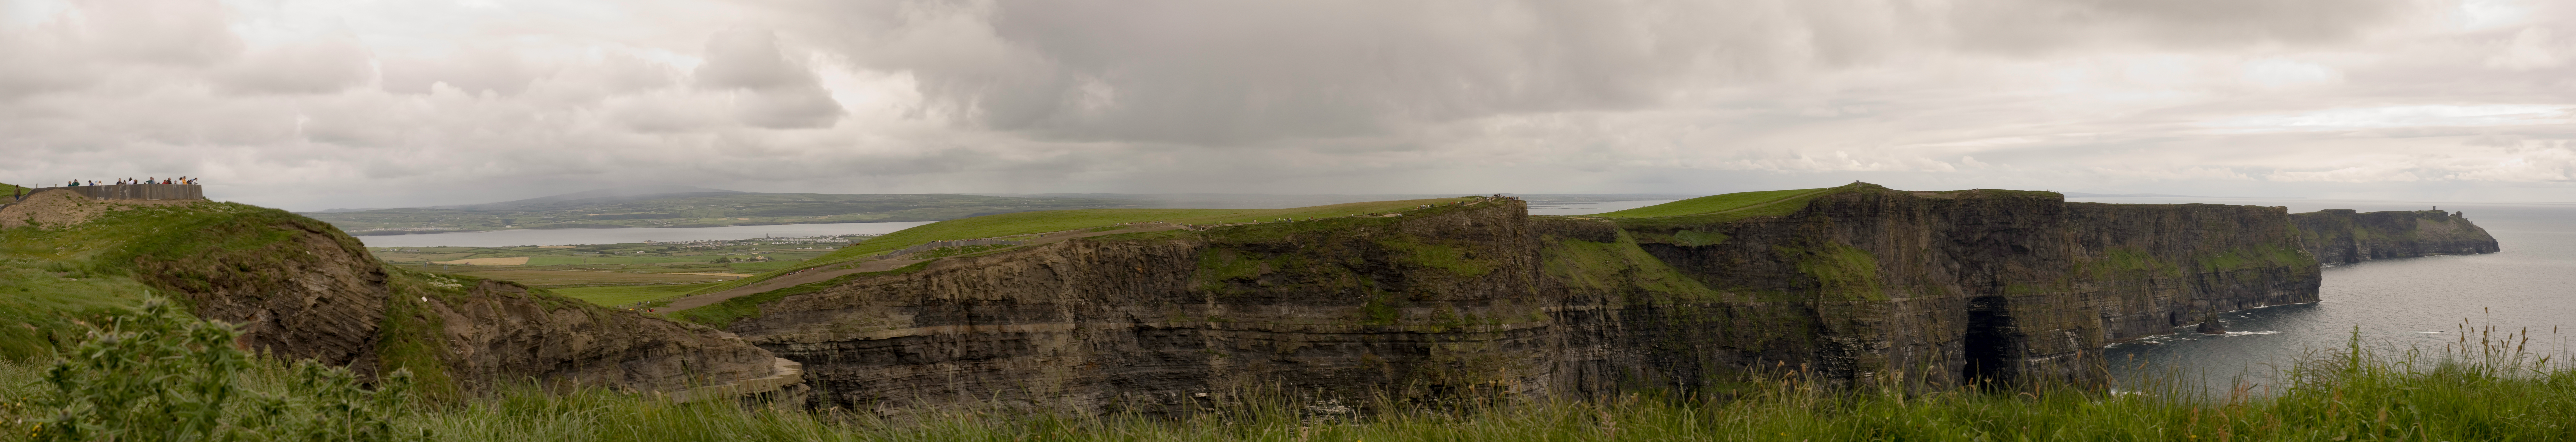 Cliffs_of_moher_Утесы_Ирландии_графство_Клэр